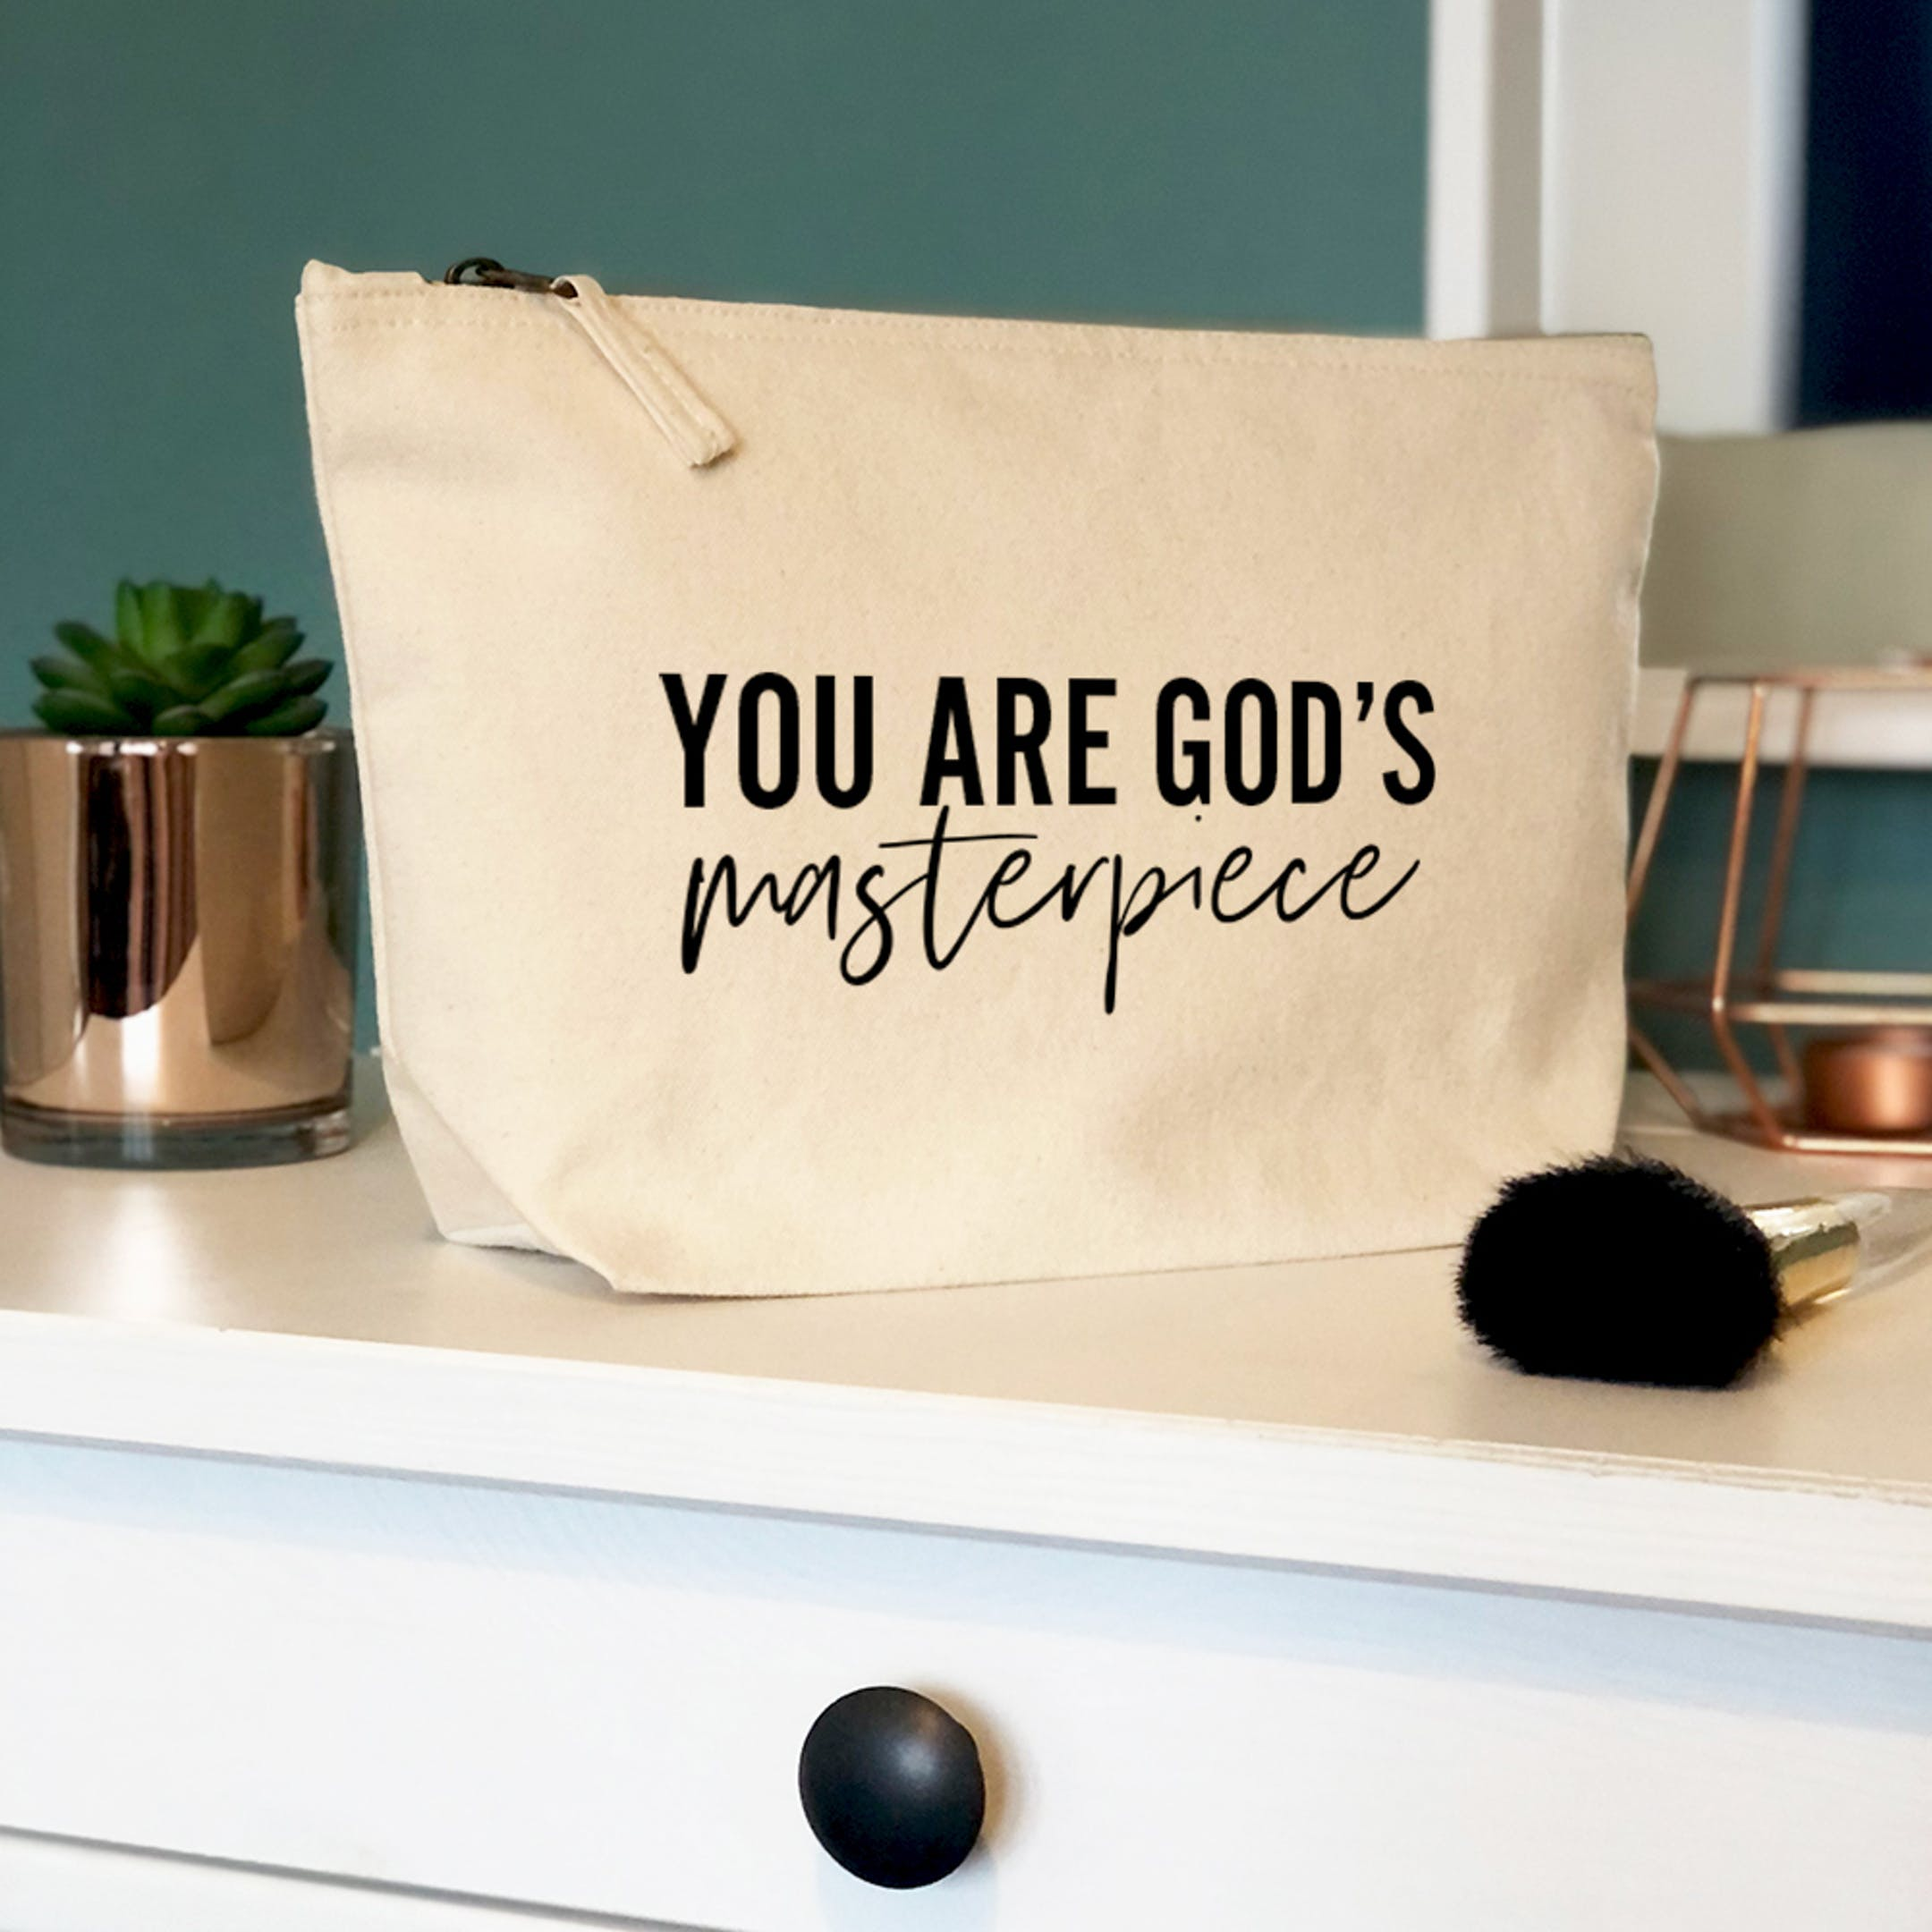 You are God's Masterpiece Christian Makeup Bag   Bow and Arrow UK   Cheerfully Given - Christian Gifts for Her